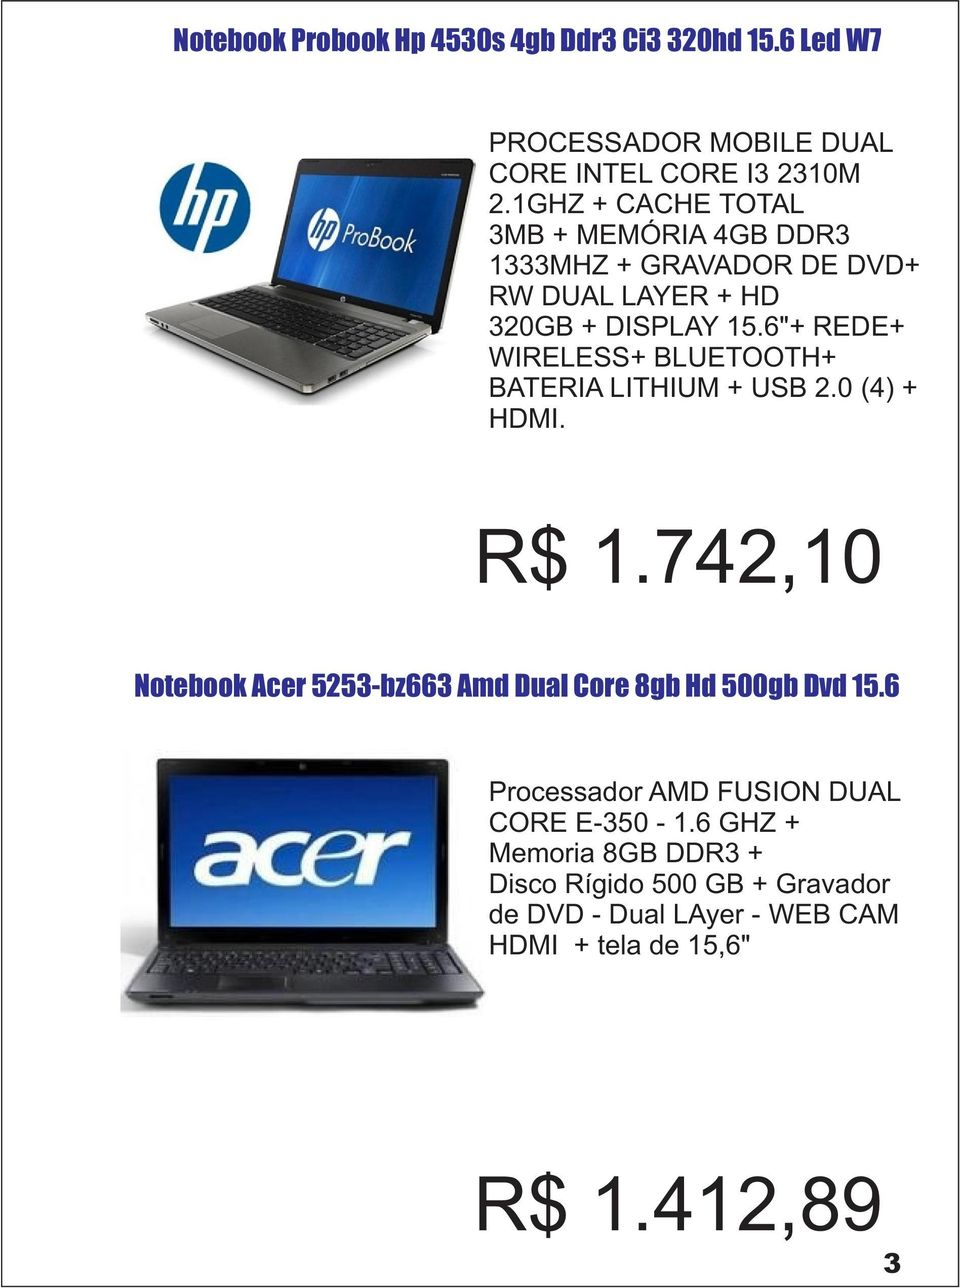 "6""+ REDE+ WIRELESS+ BLUETOOTH+ BATERIA LITHIUM + USB 2.0 (4) + HDMI. R$ 1."